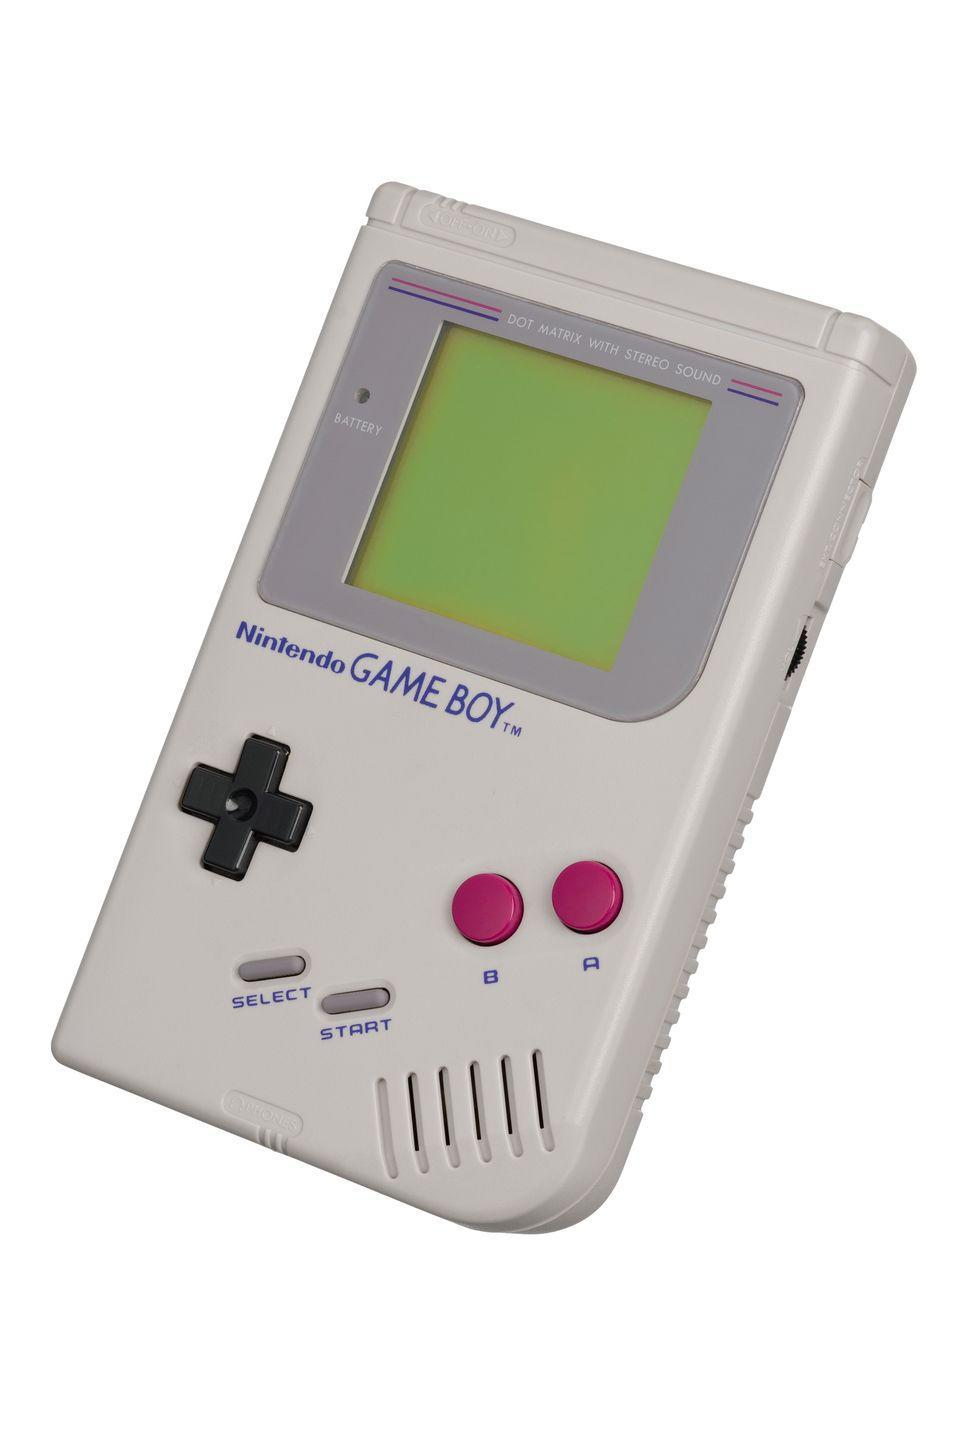 """<p>Before we were obsessed with our cell phones, we whiled away the hours on Nintendo's handheld game system, which was first release in the U.S. in 1989. These days, mint condition Game Boys go for hundreds and, if you have a special edition like the <a href=""""https://www.ebay.com/itm/Nintendo-Game-Boy-Light-Clear-Yellow-Hardware-Dragon-Quest-GB-Memory-B28B/292855881834?hash=item442f92206a:rk:2:pf:0"""" rel=""""nofollow noopener"""" target=""""_blank"""" data-ylk=""""slk:Game Boy Light"""" class=""""link rapid-noclick-resp"""">Game Boy Light</a>, over $1,000. </p>"""